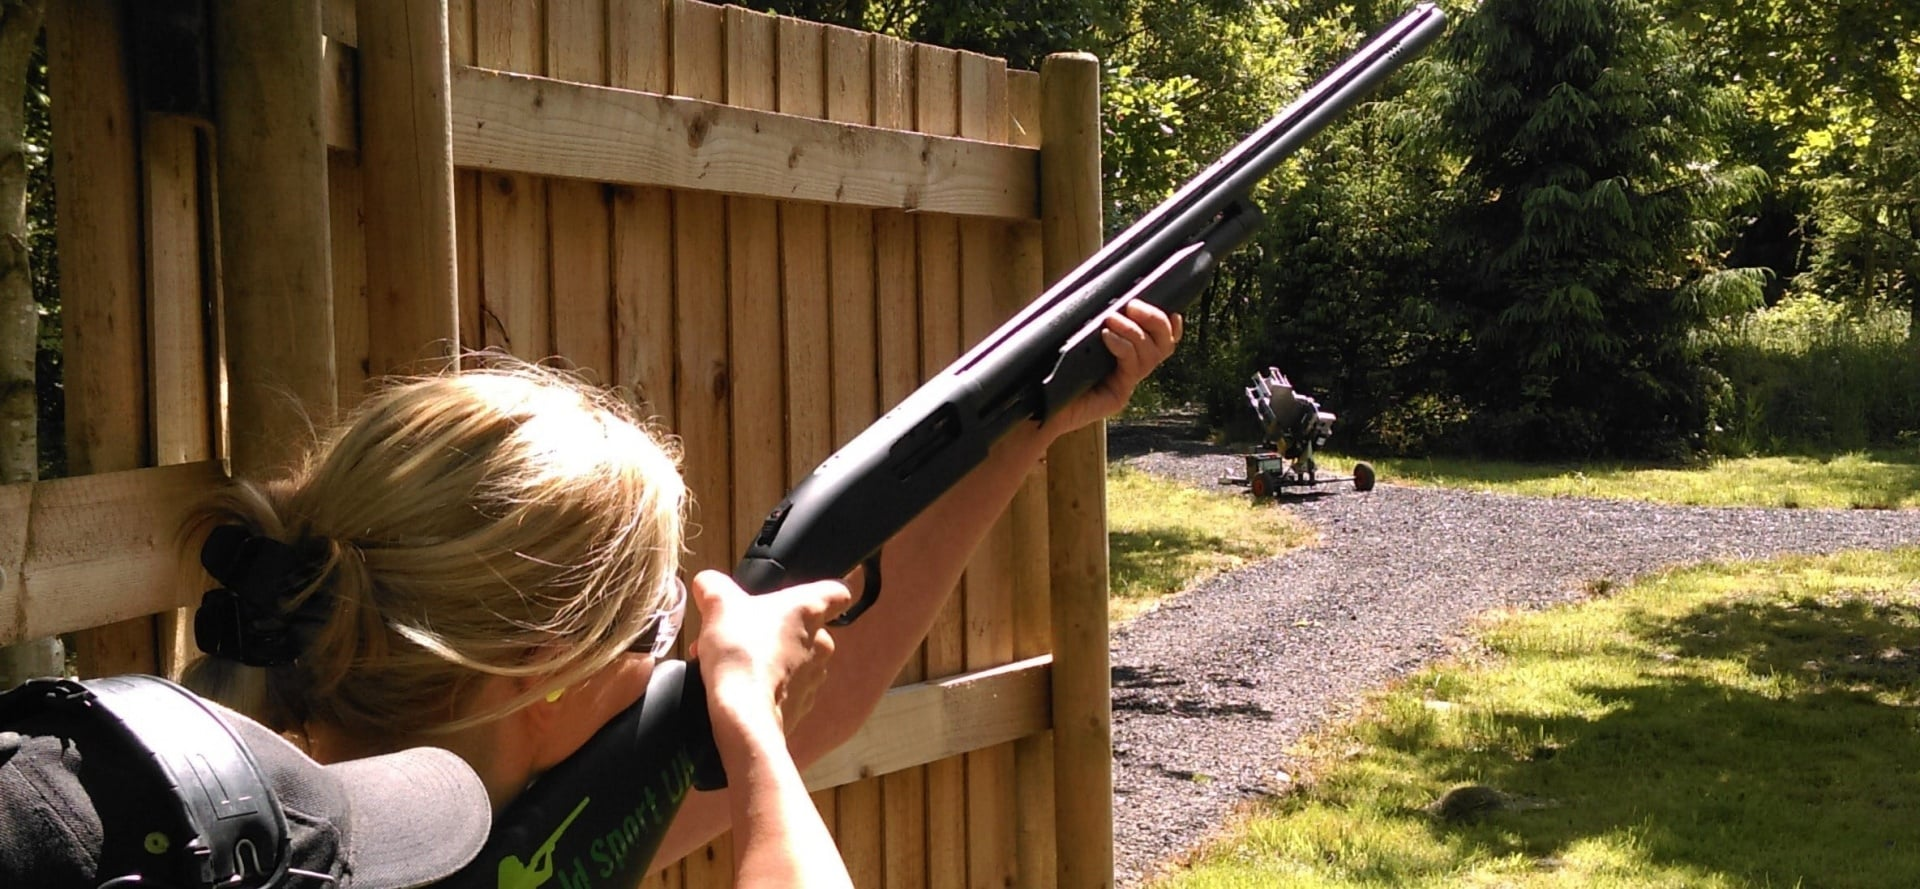 Pump Action Shotgun Experience Leicestershire-6